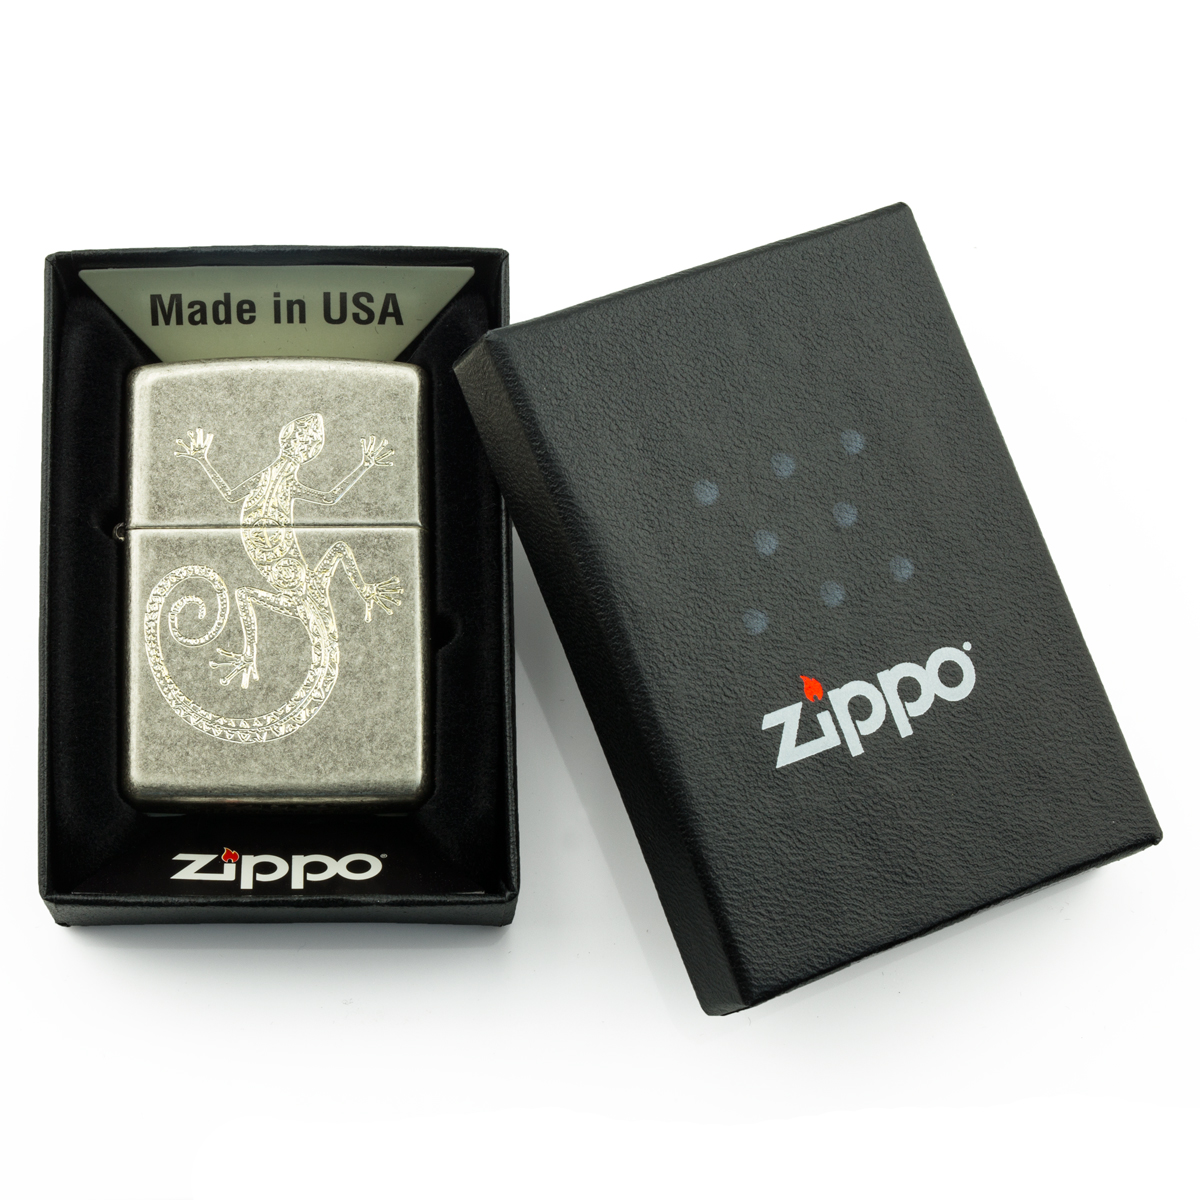 zippo-bac-co-antique-khac-hoa-van-than-lan-4